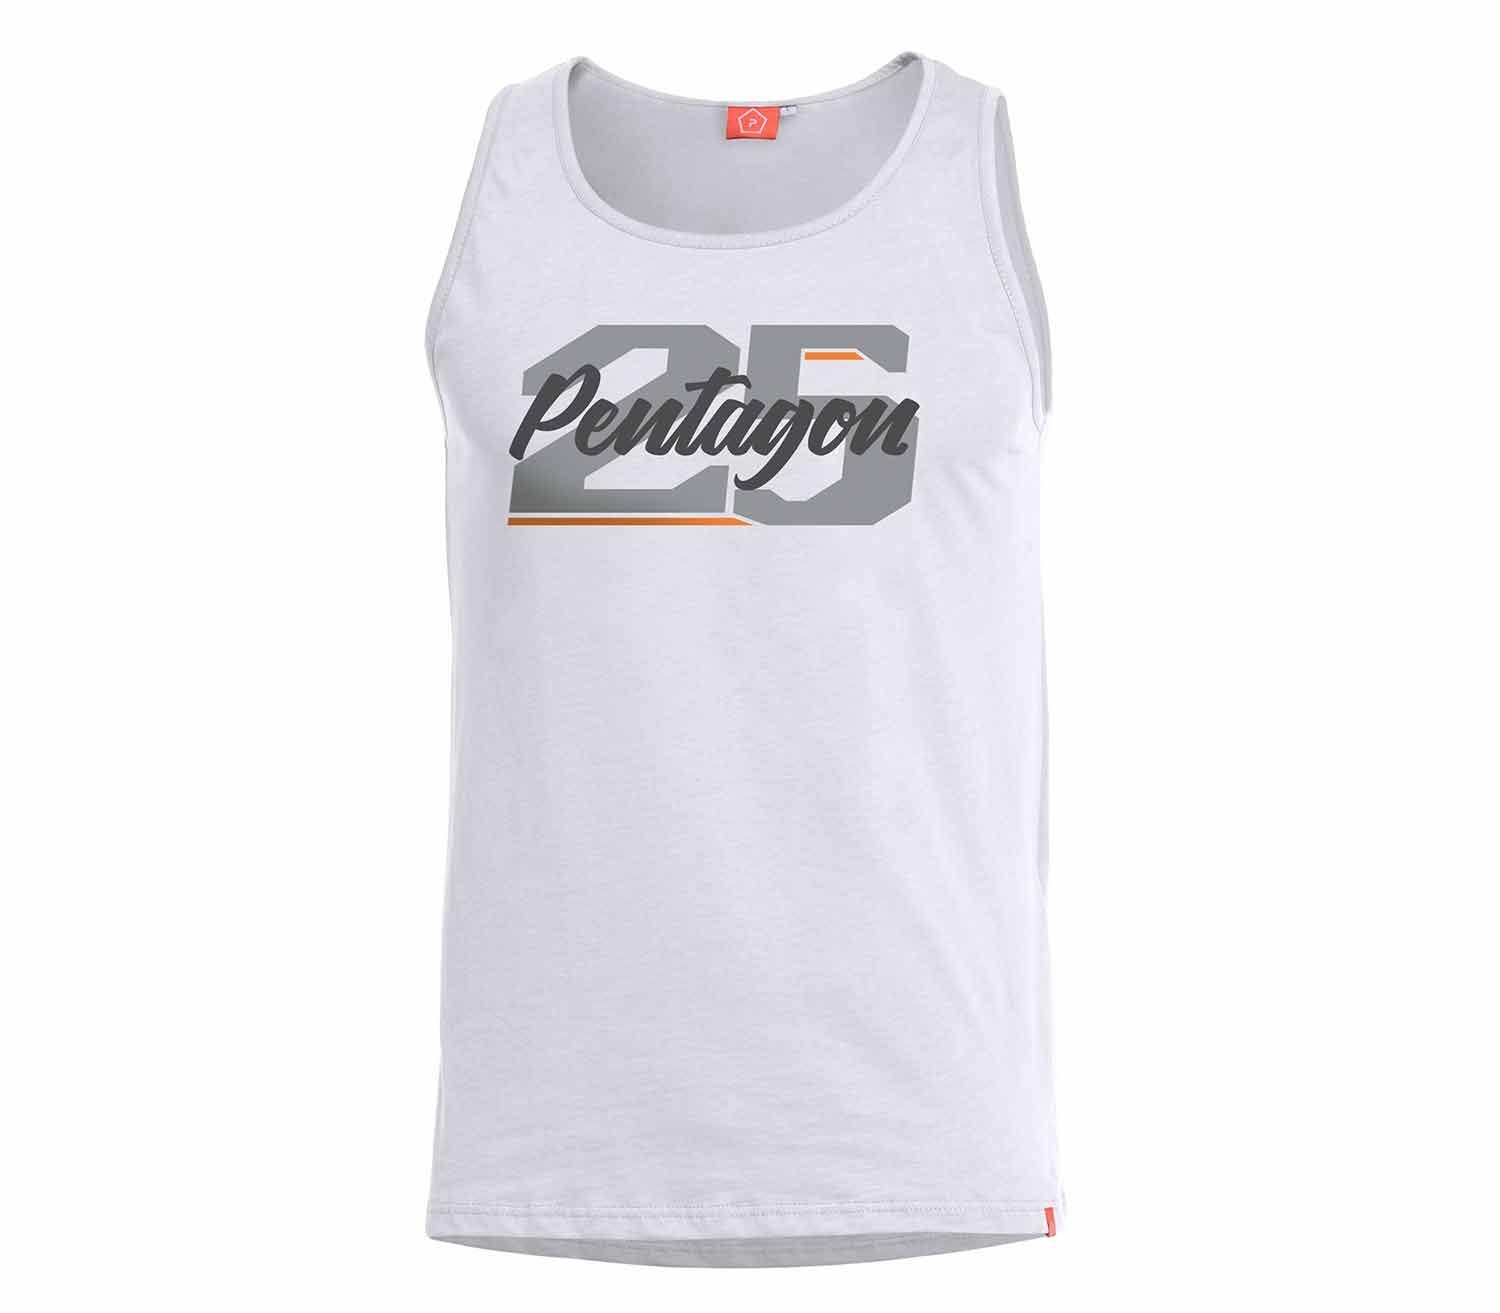 Camiseta-Pentagon-Astir-Twenty-Five-Blanco.jpg